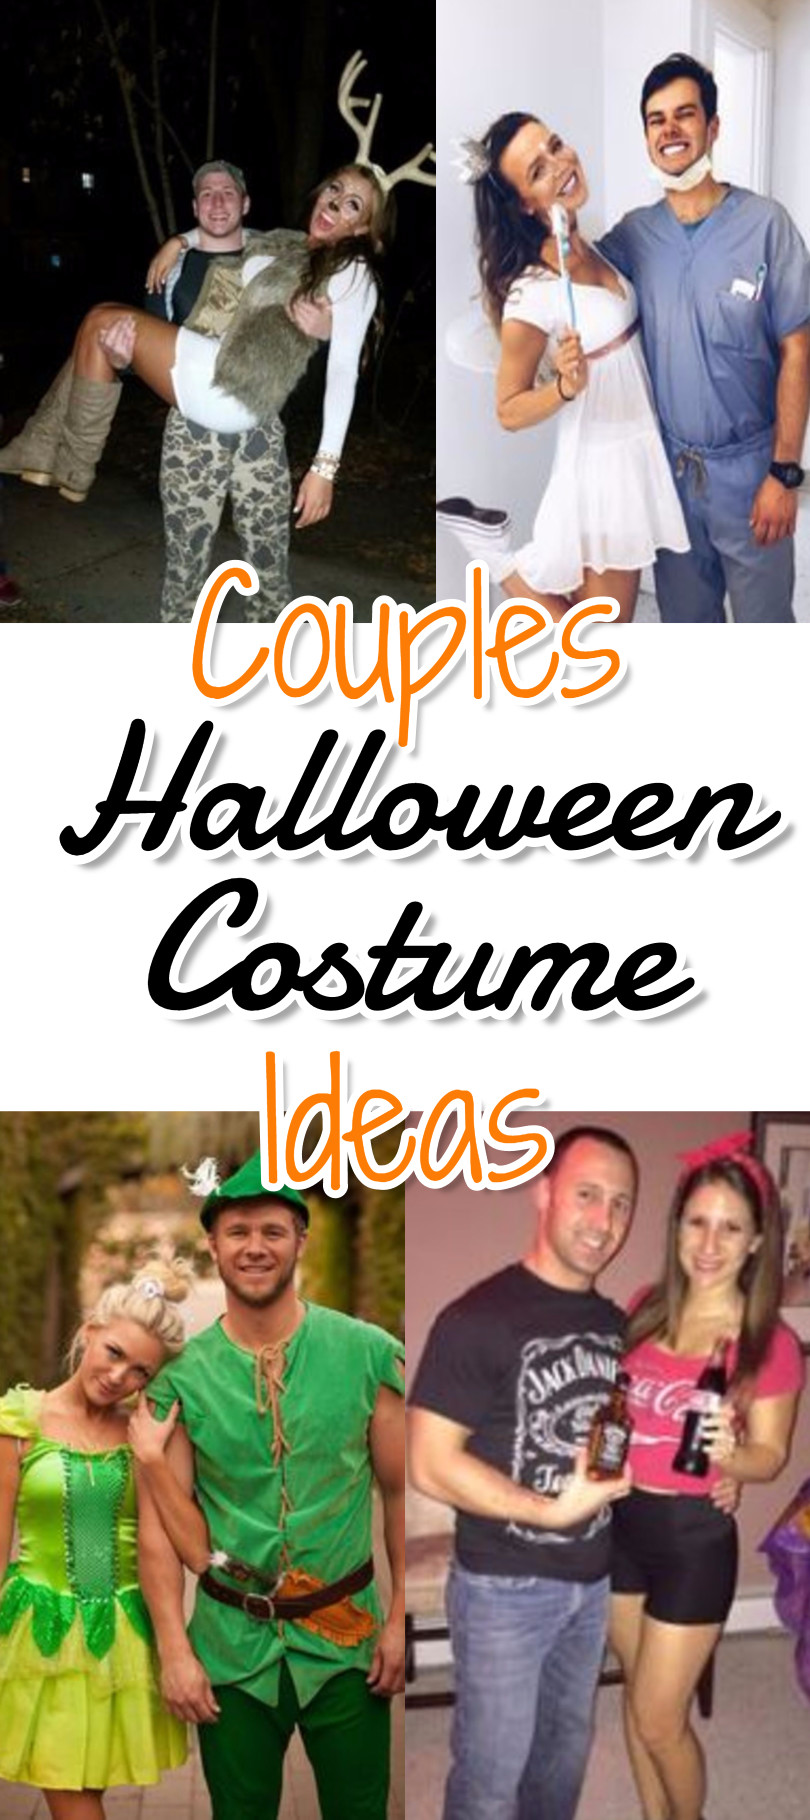 DIY Halloween costume ideas for couples - unique and FUN costume ideas for couples